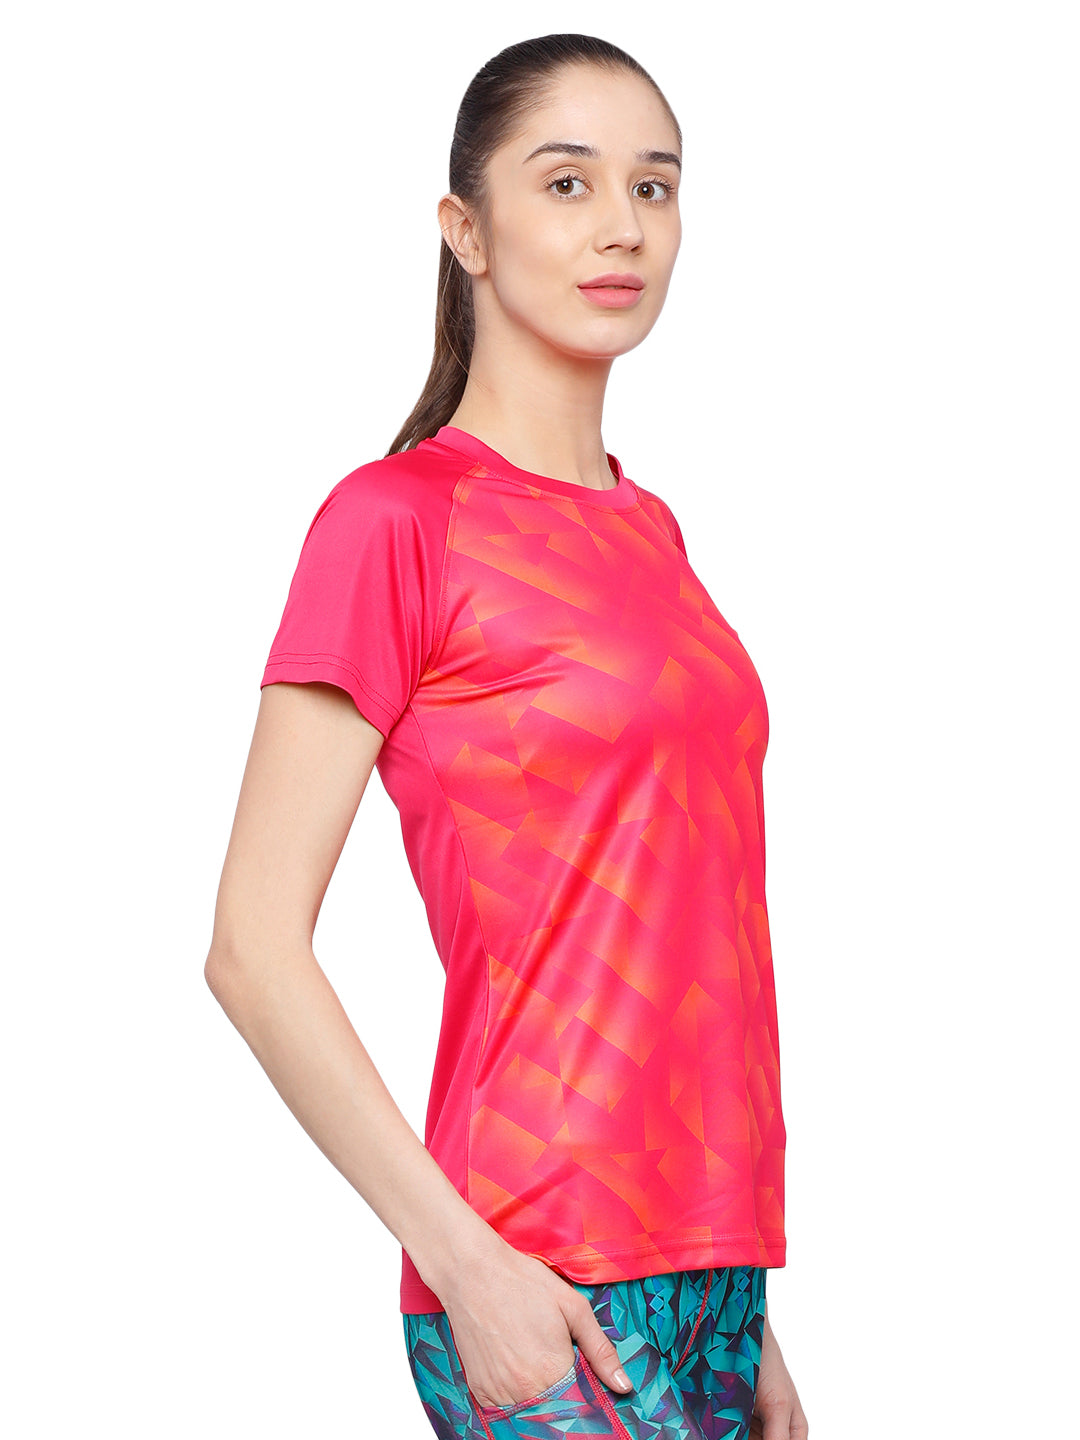 Piranha Women's Pink T-shirt TSG172